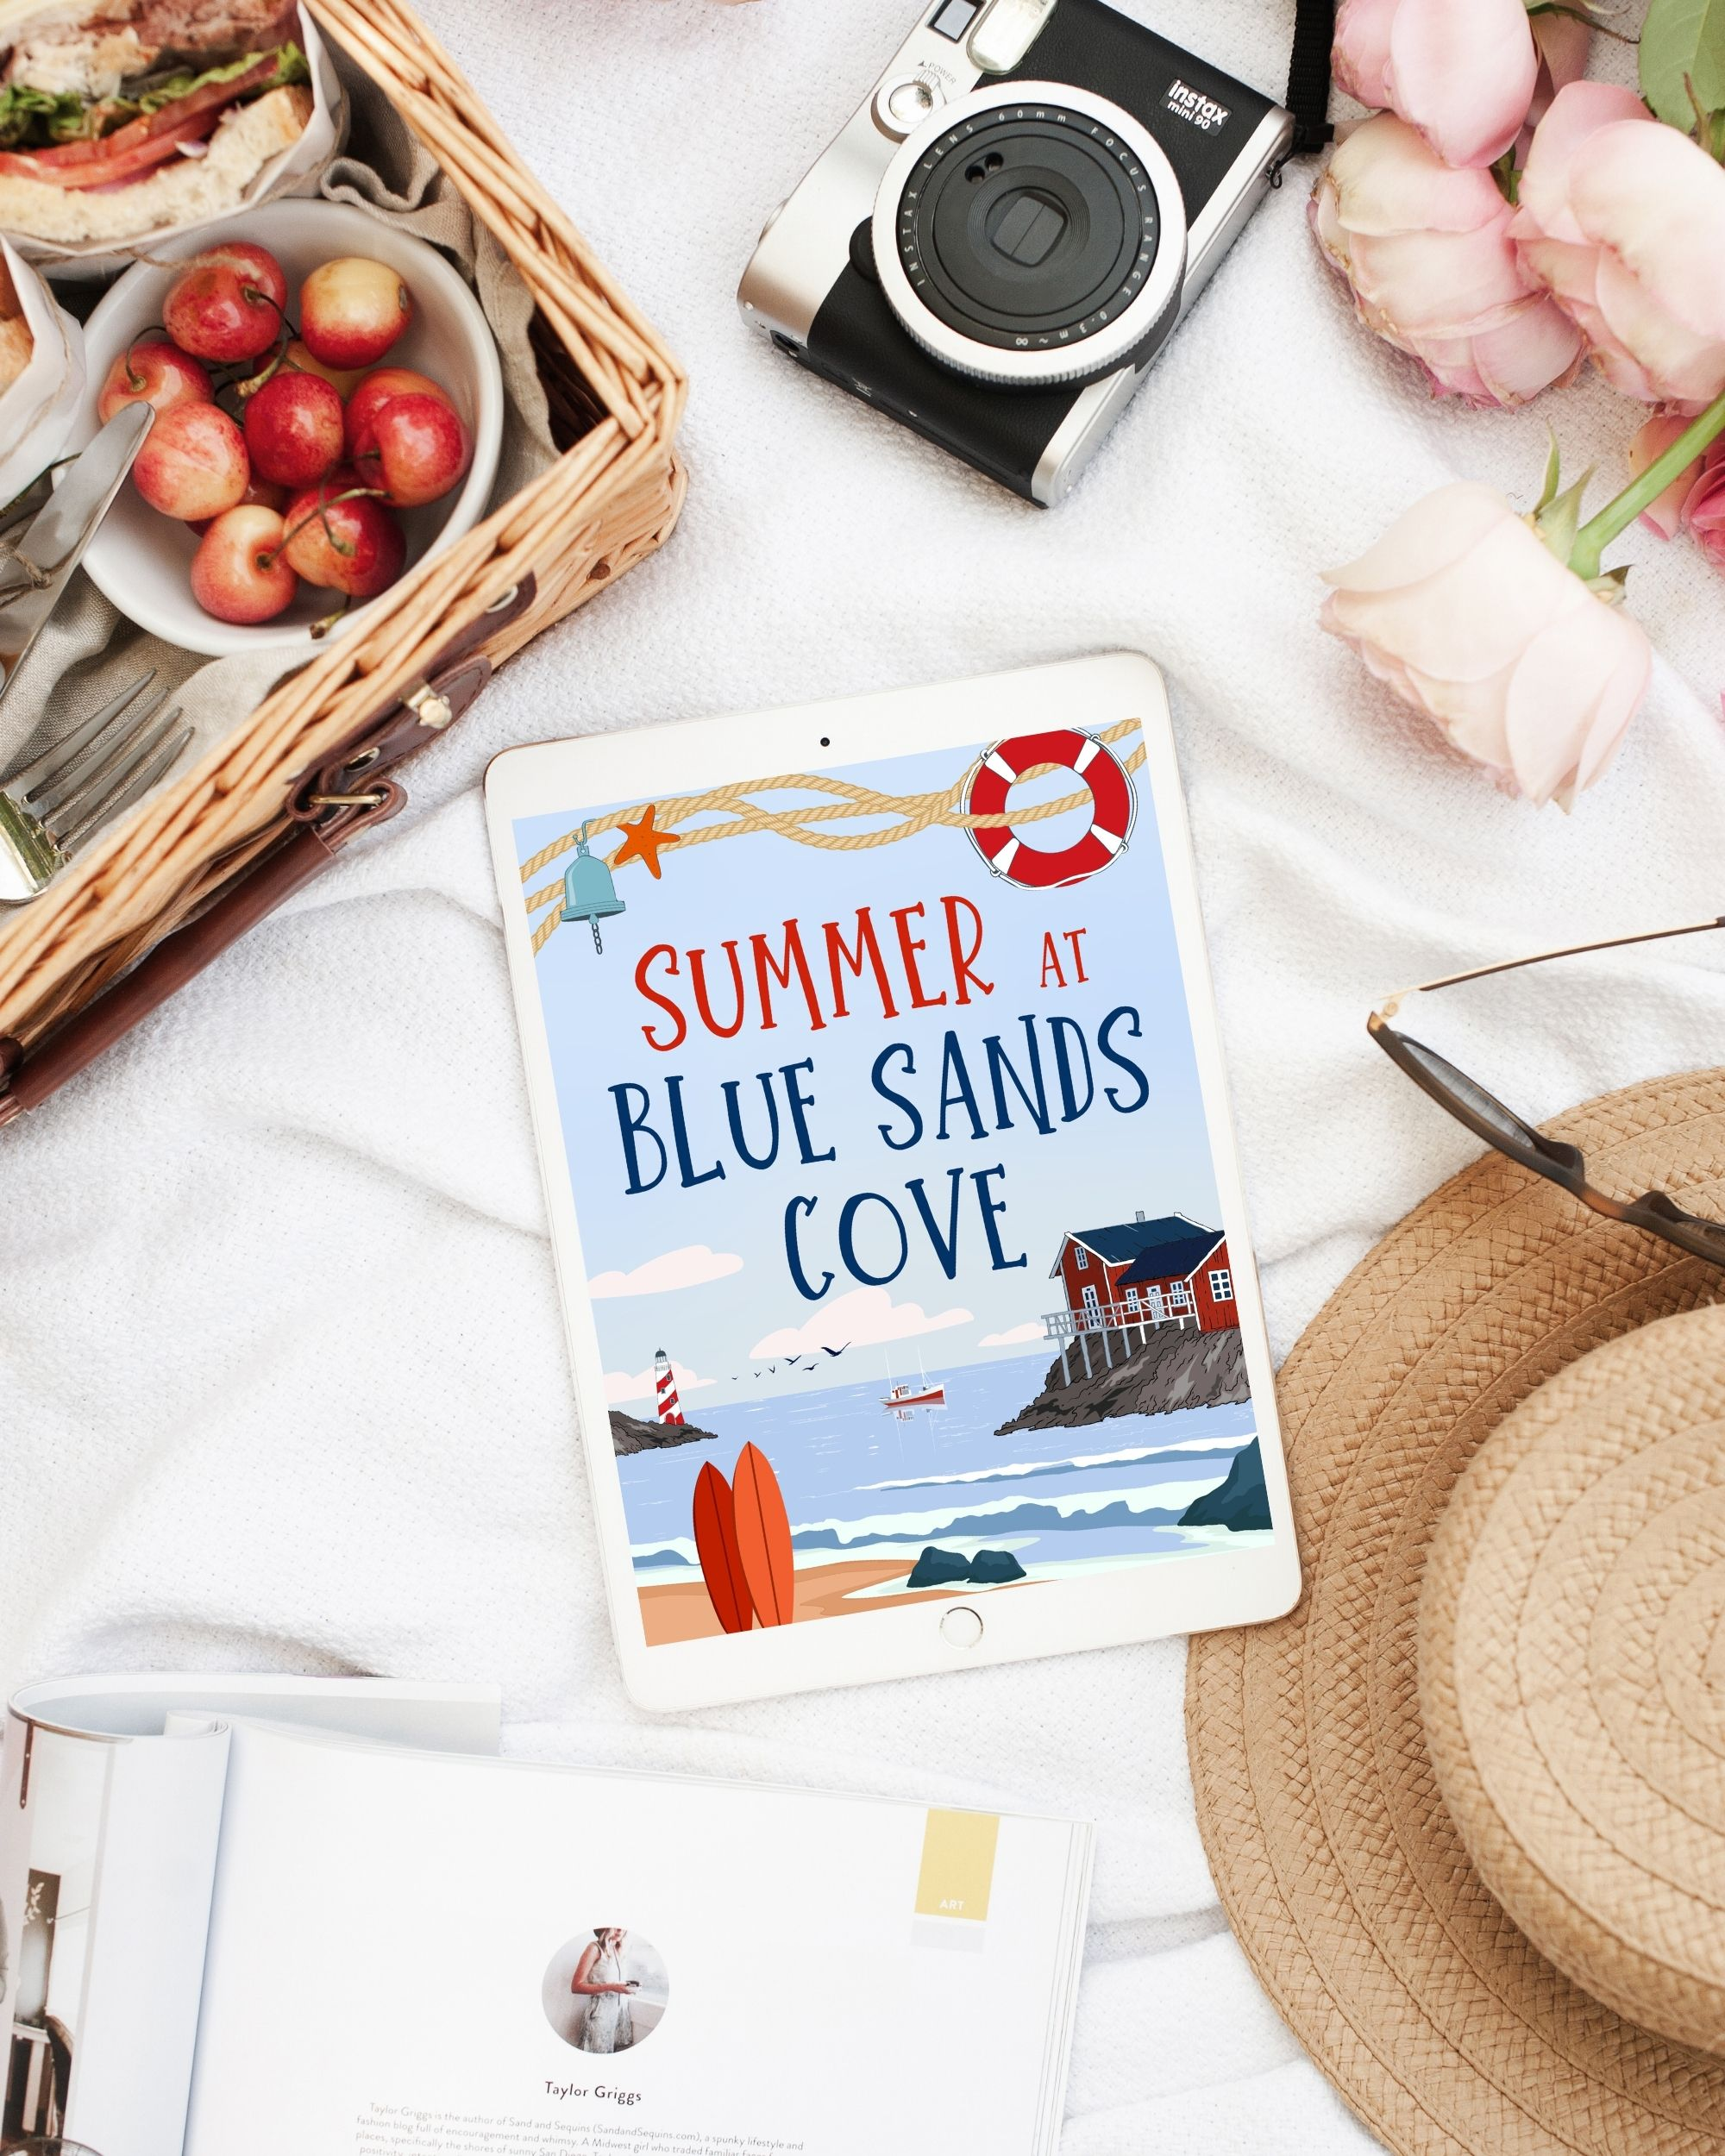 Summer at Blue Sands Cove by CP Ward Review - Wickedly Romance